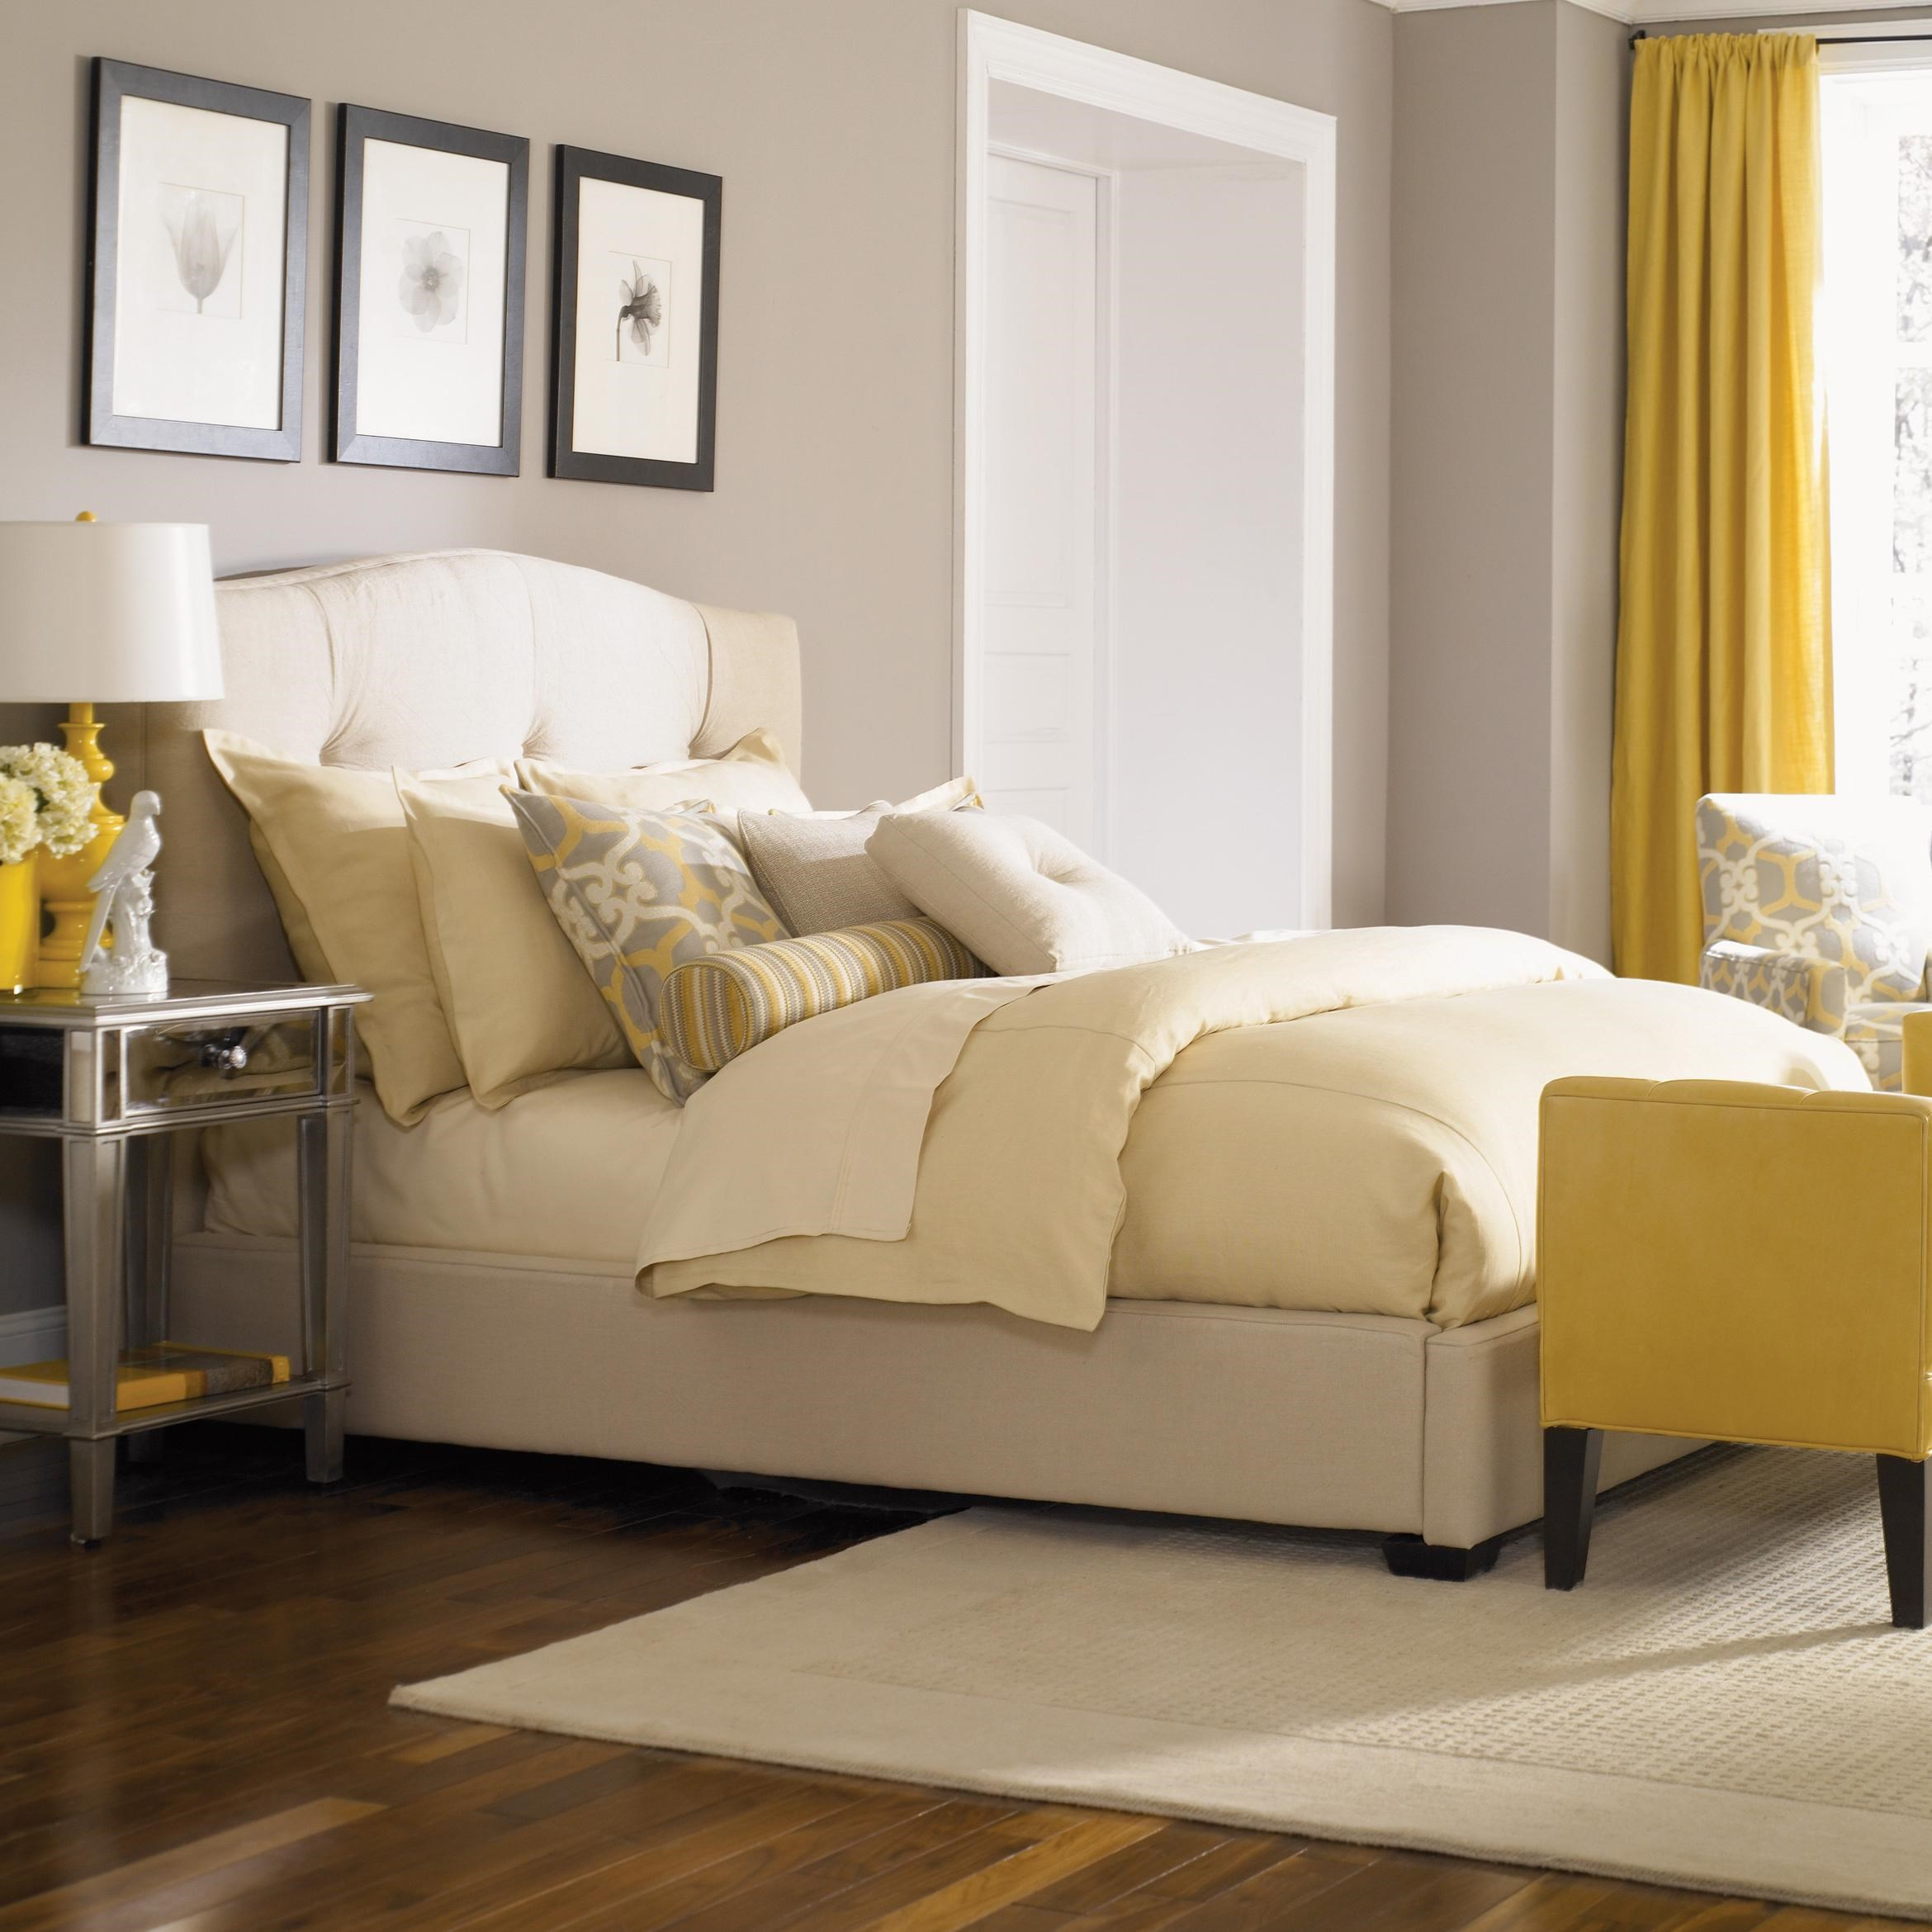 tufted upholstered bed. Jonathan Louis Haven BedsQueen Upholstered Bed Tufted